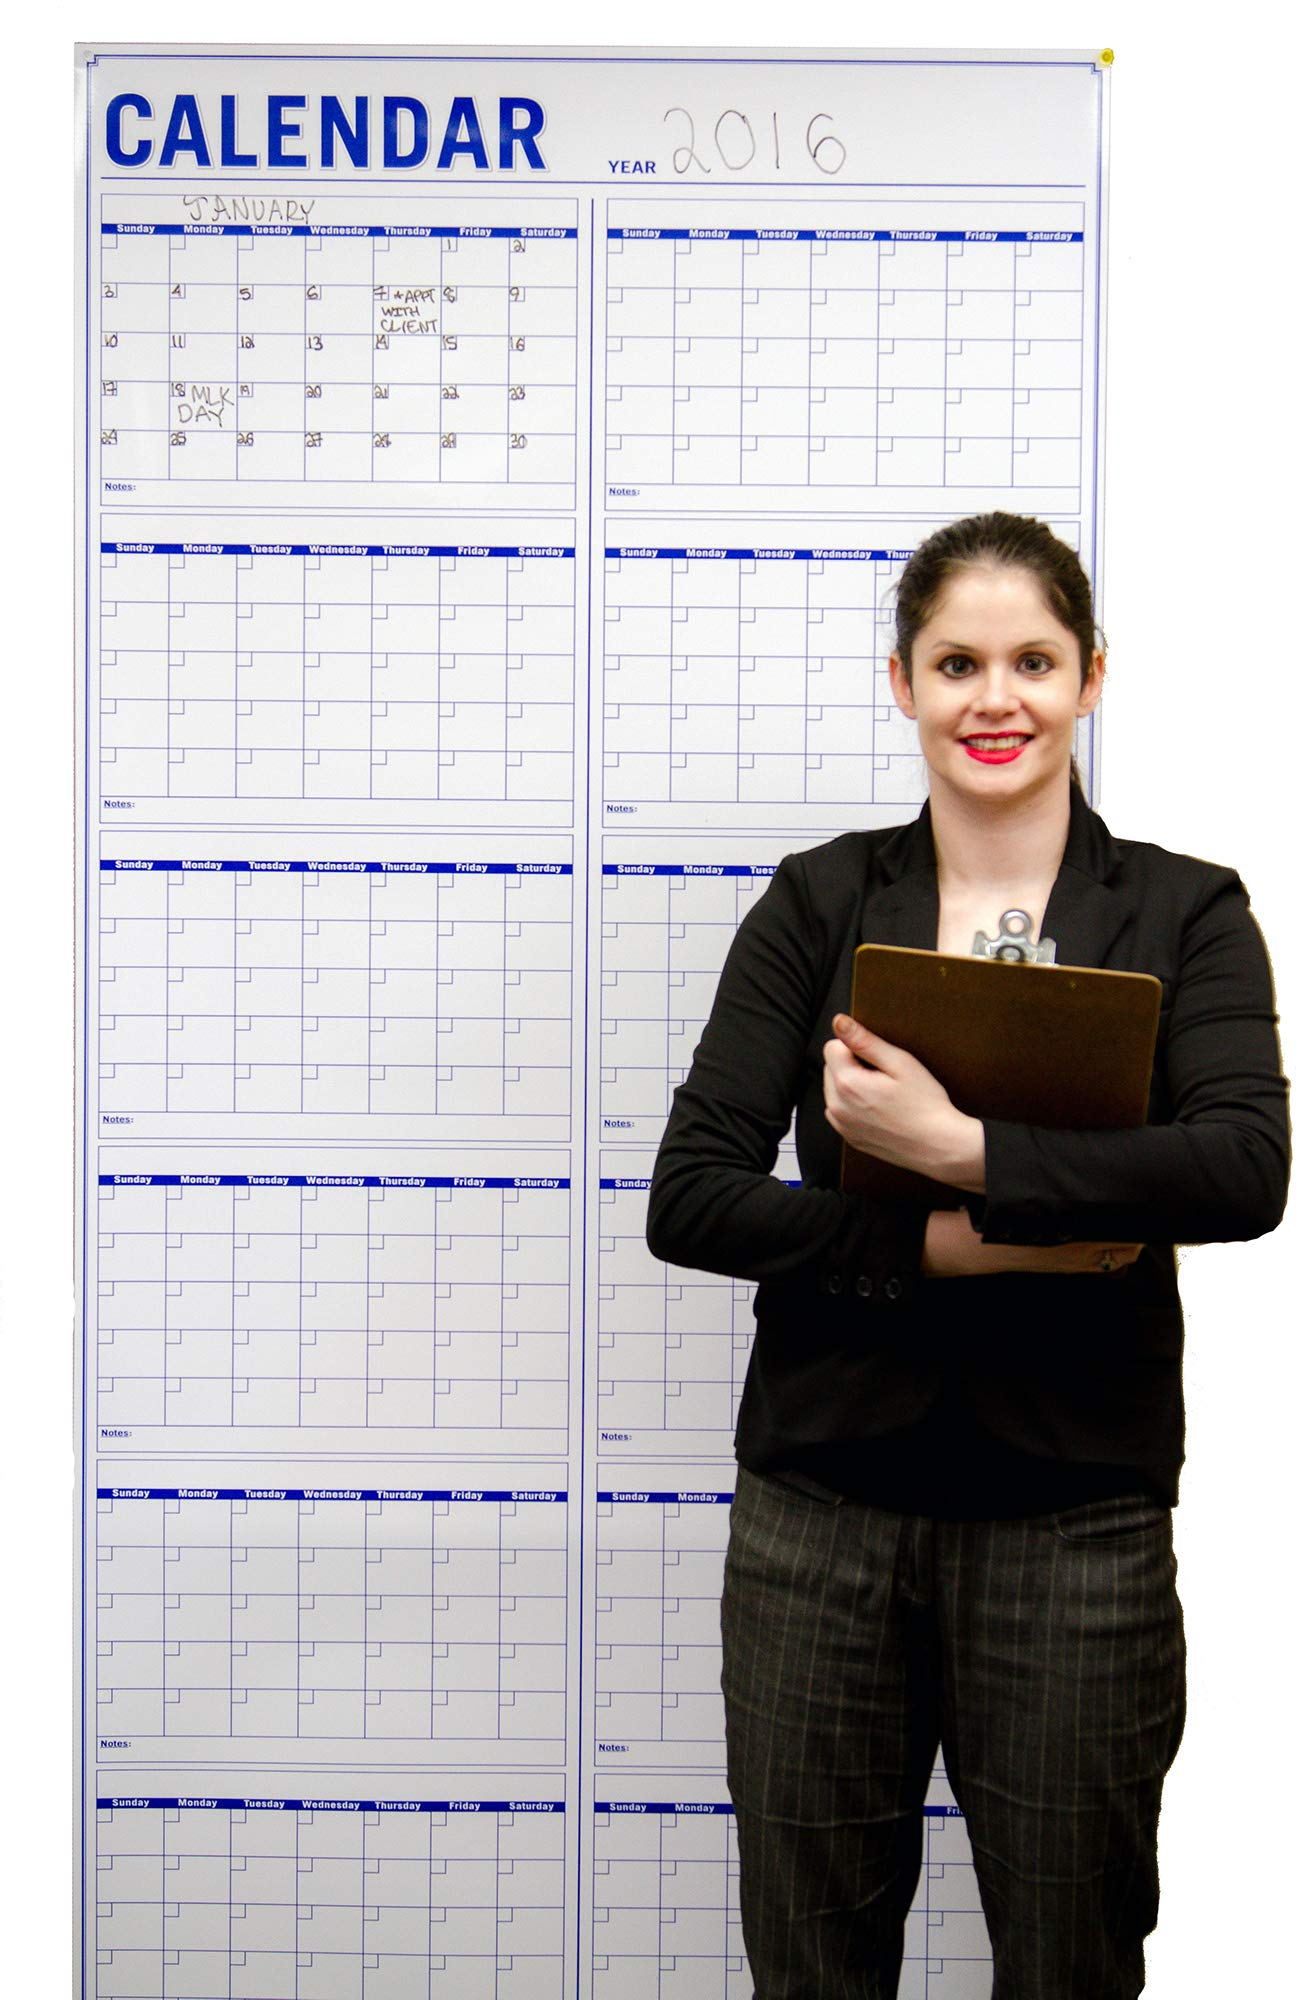 Large Dry Erase Wall Calendar -72 x36 Inch Vertical Jumbo Wet Erase Laminated 12 Month Planning Calendar - Calendars for Academic and Office Project Goals - Erasable Fiscal Year Wall Planner by Oversize Planner by ABI Digital Solutions